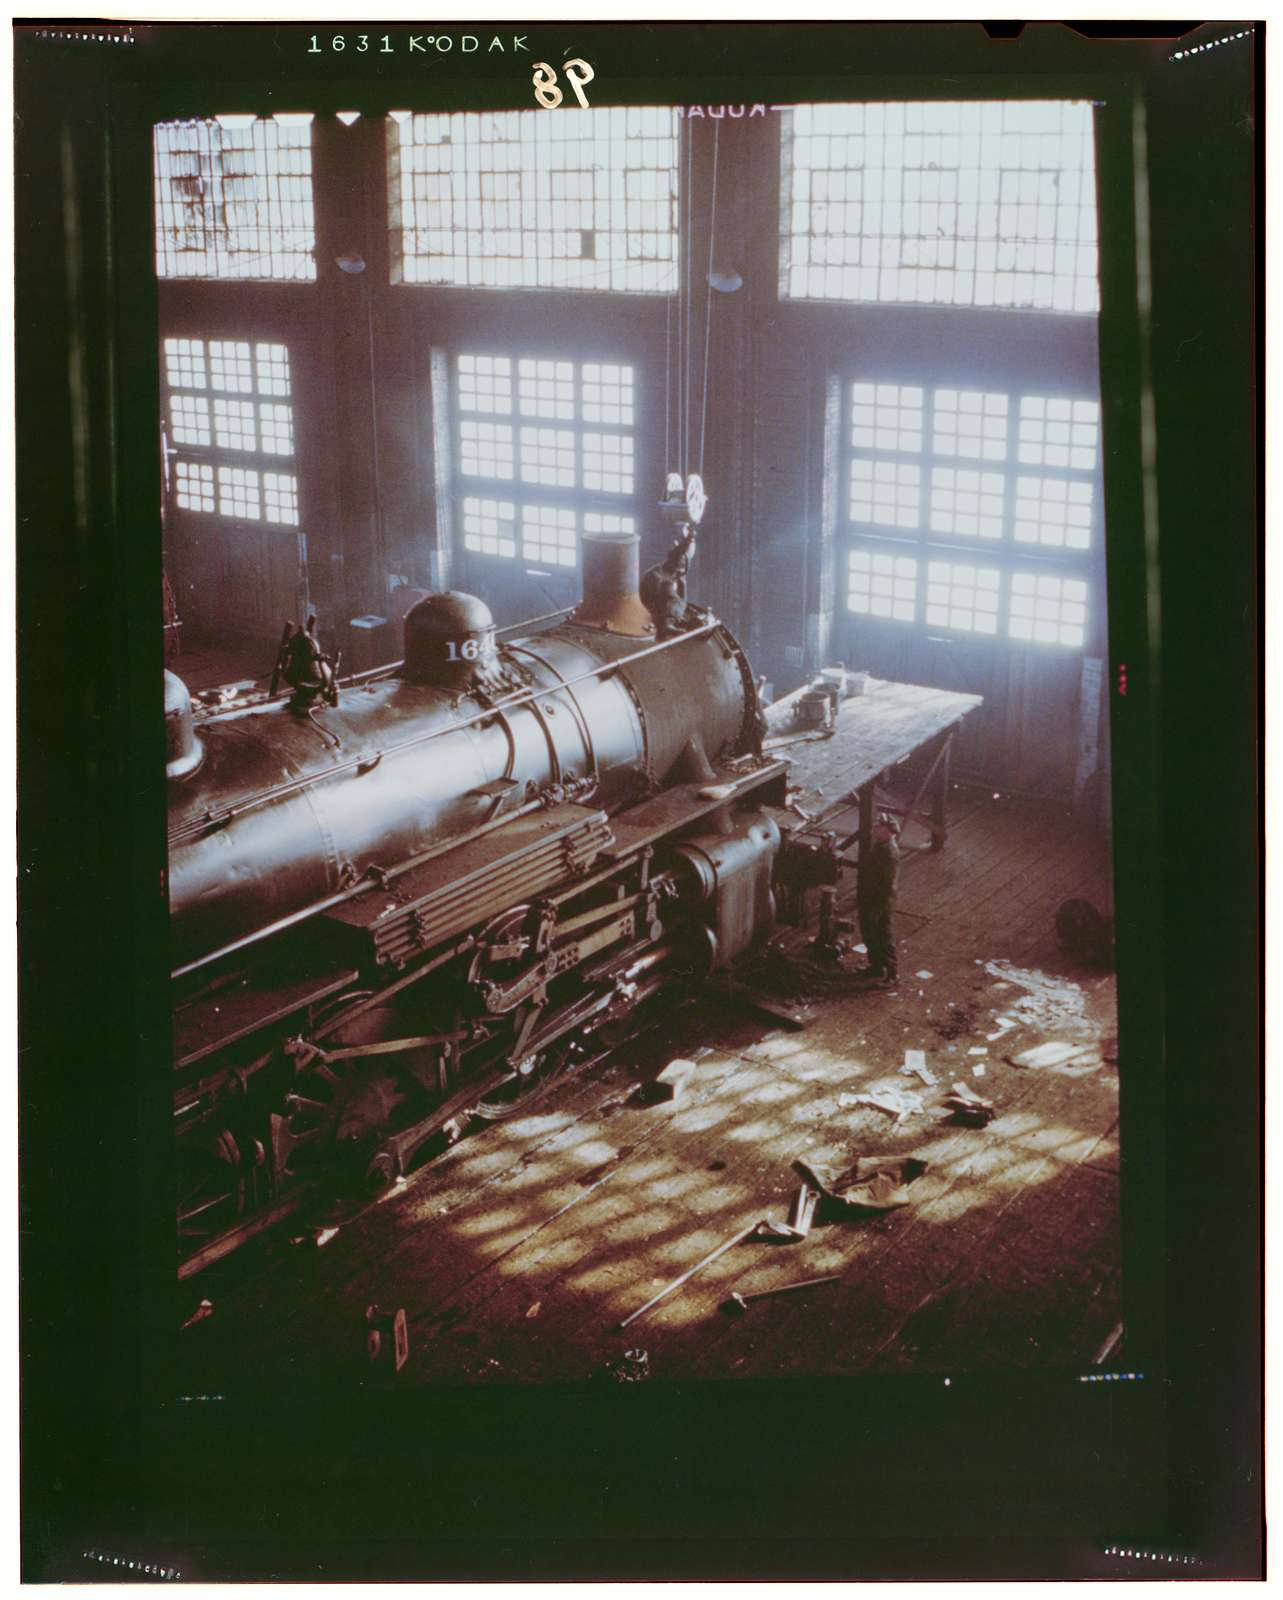 C & NW RR i.e. Chicago and North Western railroad, working on a locomotive at the 40th Street railroad shops, Chicago, Ill